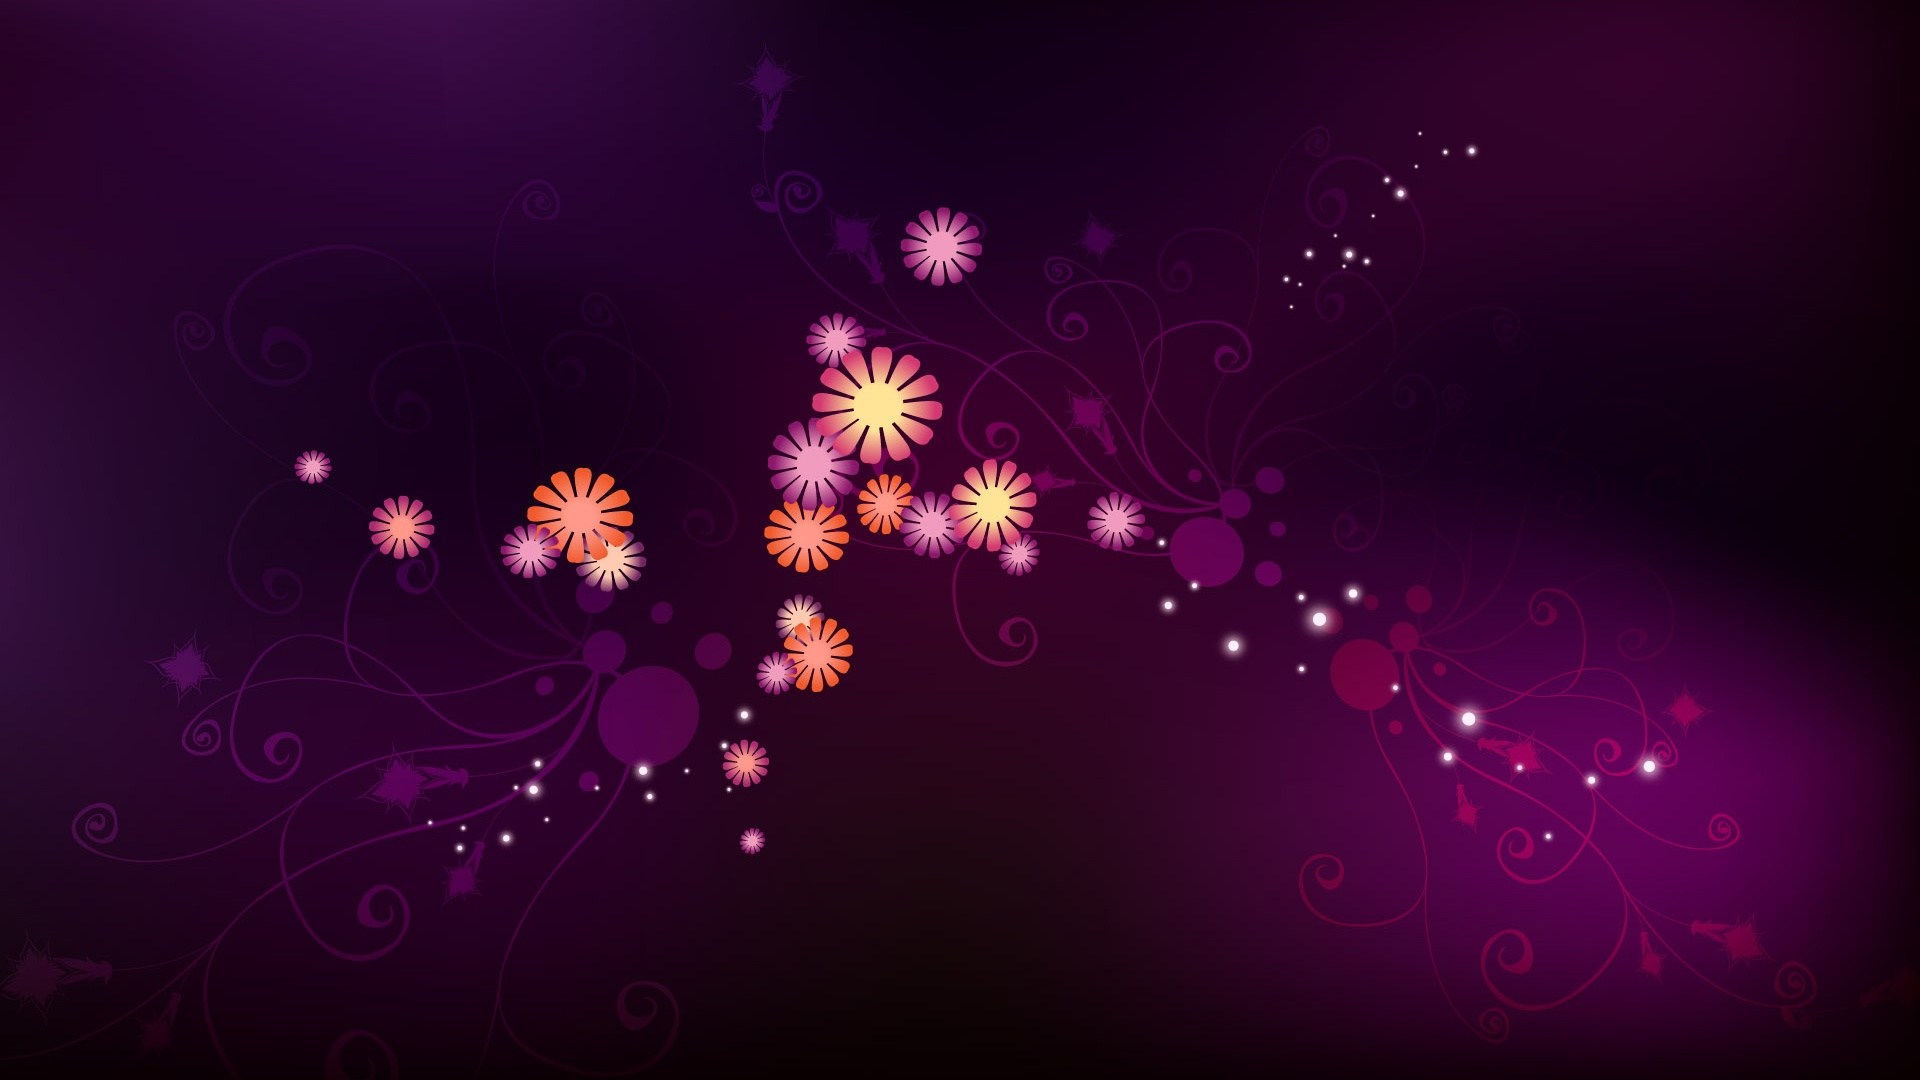 Free Animated Desktop Wallpaper: Free HD Gif Wallpapers